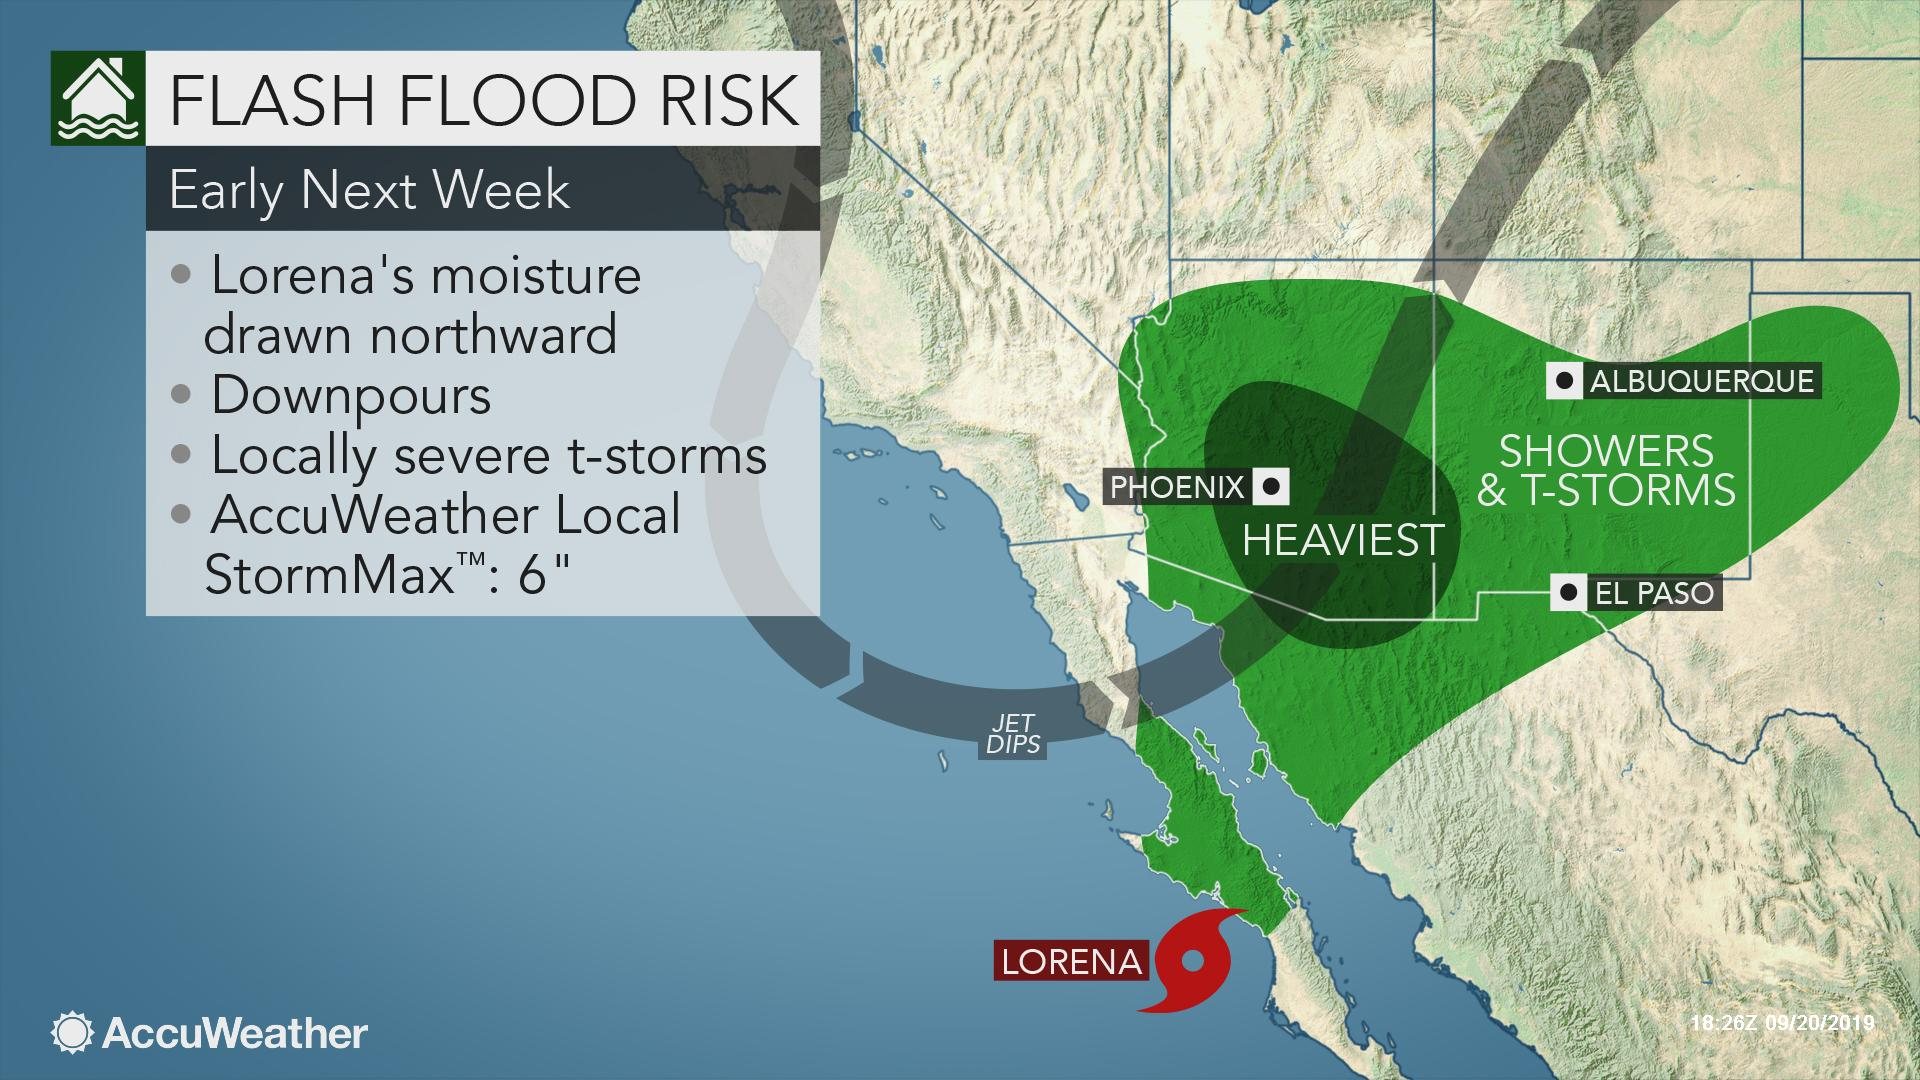 Tropical downpours to threaten flooding amid drought in southwestern US next week